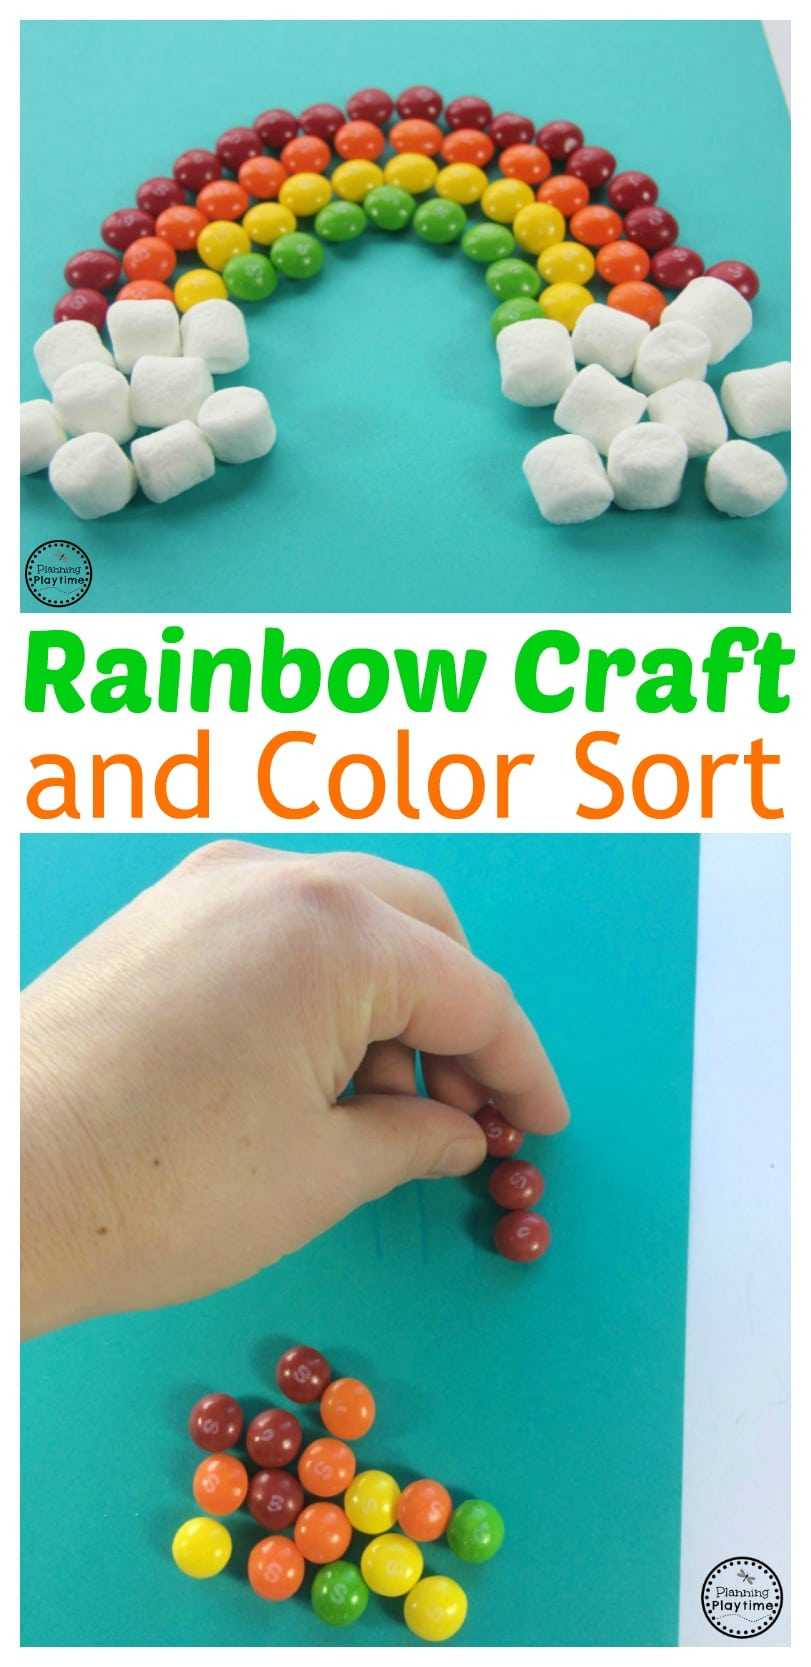 Skittles Rainbow Craft and Color Sorting Activity for kids.